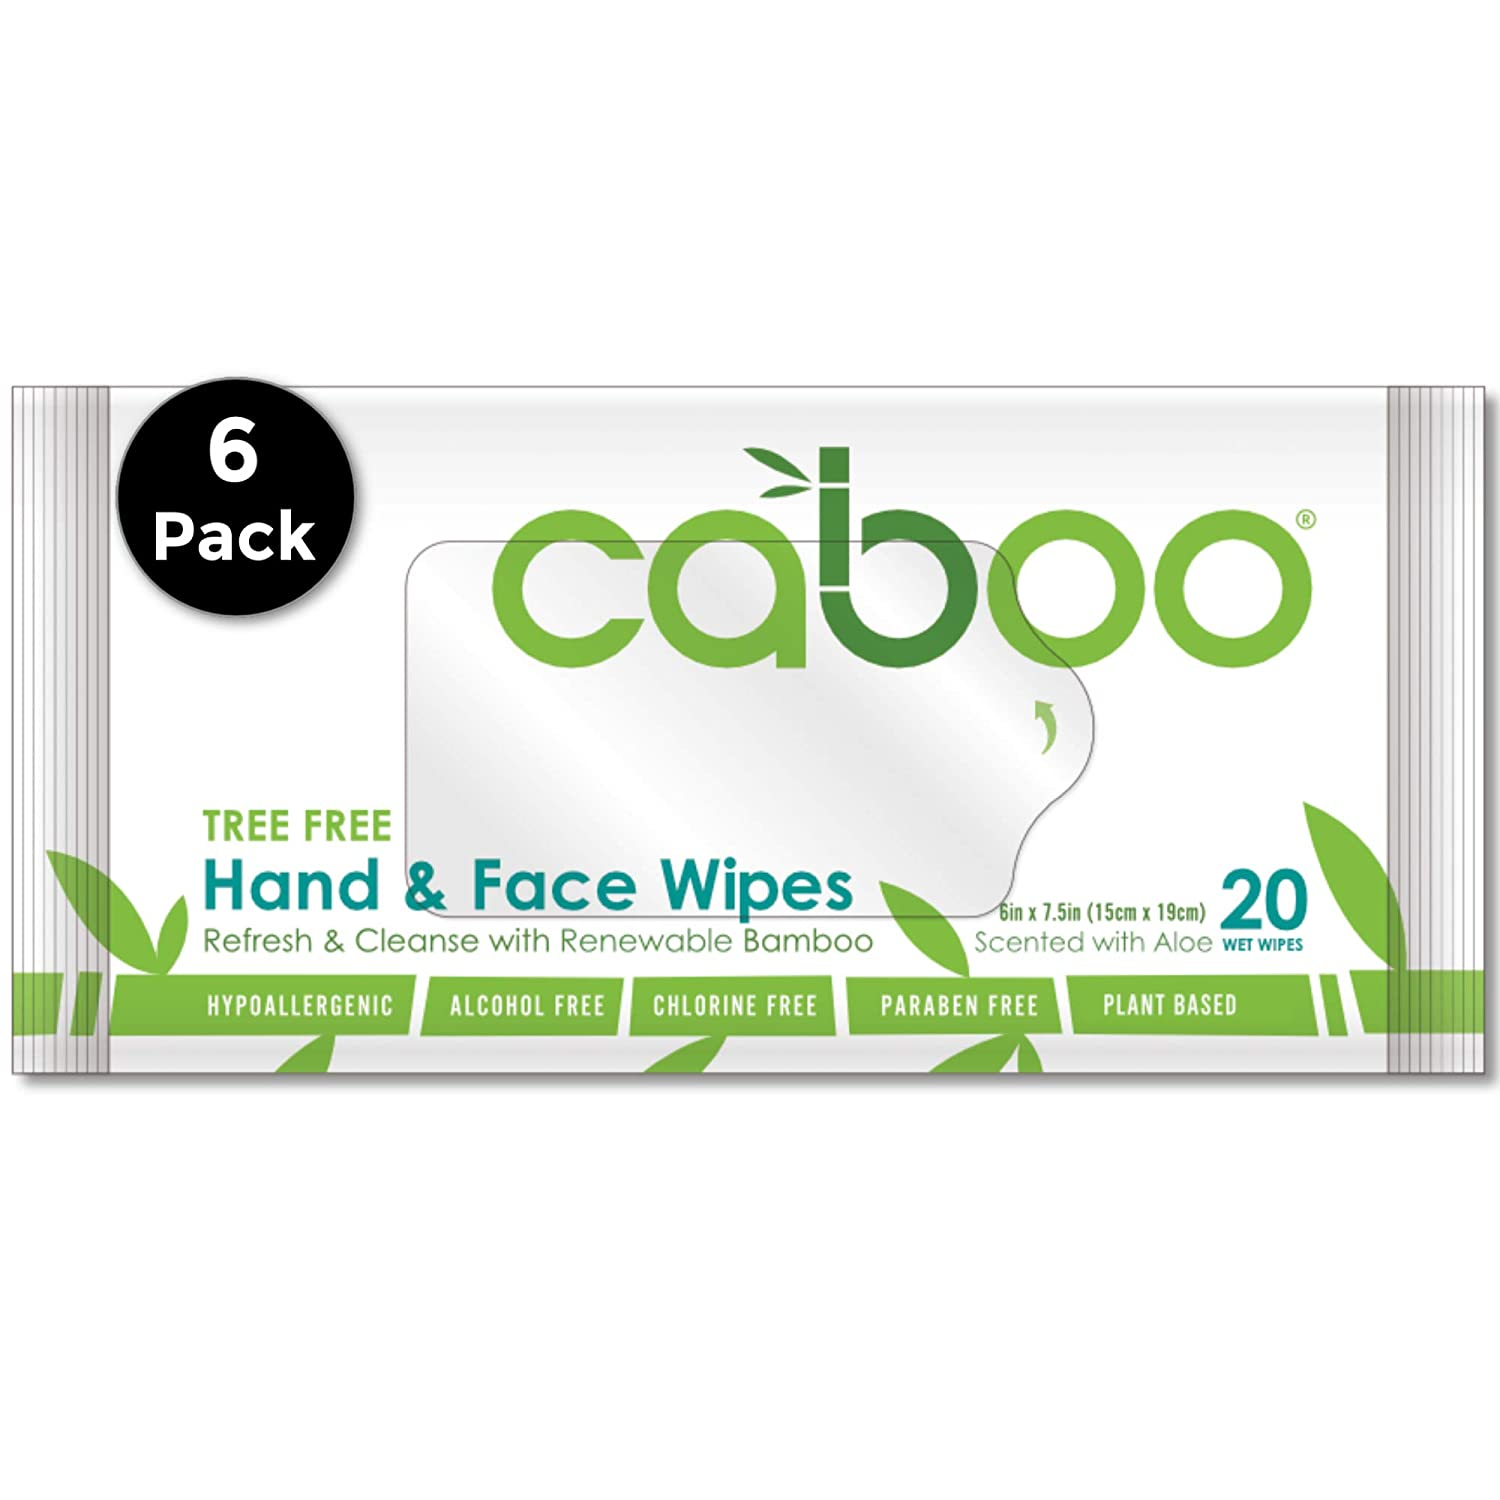 Caboo Tree-Free Bamboo Hand and Face Wipes, Eco-Friendly Wet Wipes for Sensitive Skin, 6 Resealable Travel Packs, 20 Wipes Per Pack, Total of 120 Wipes